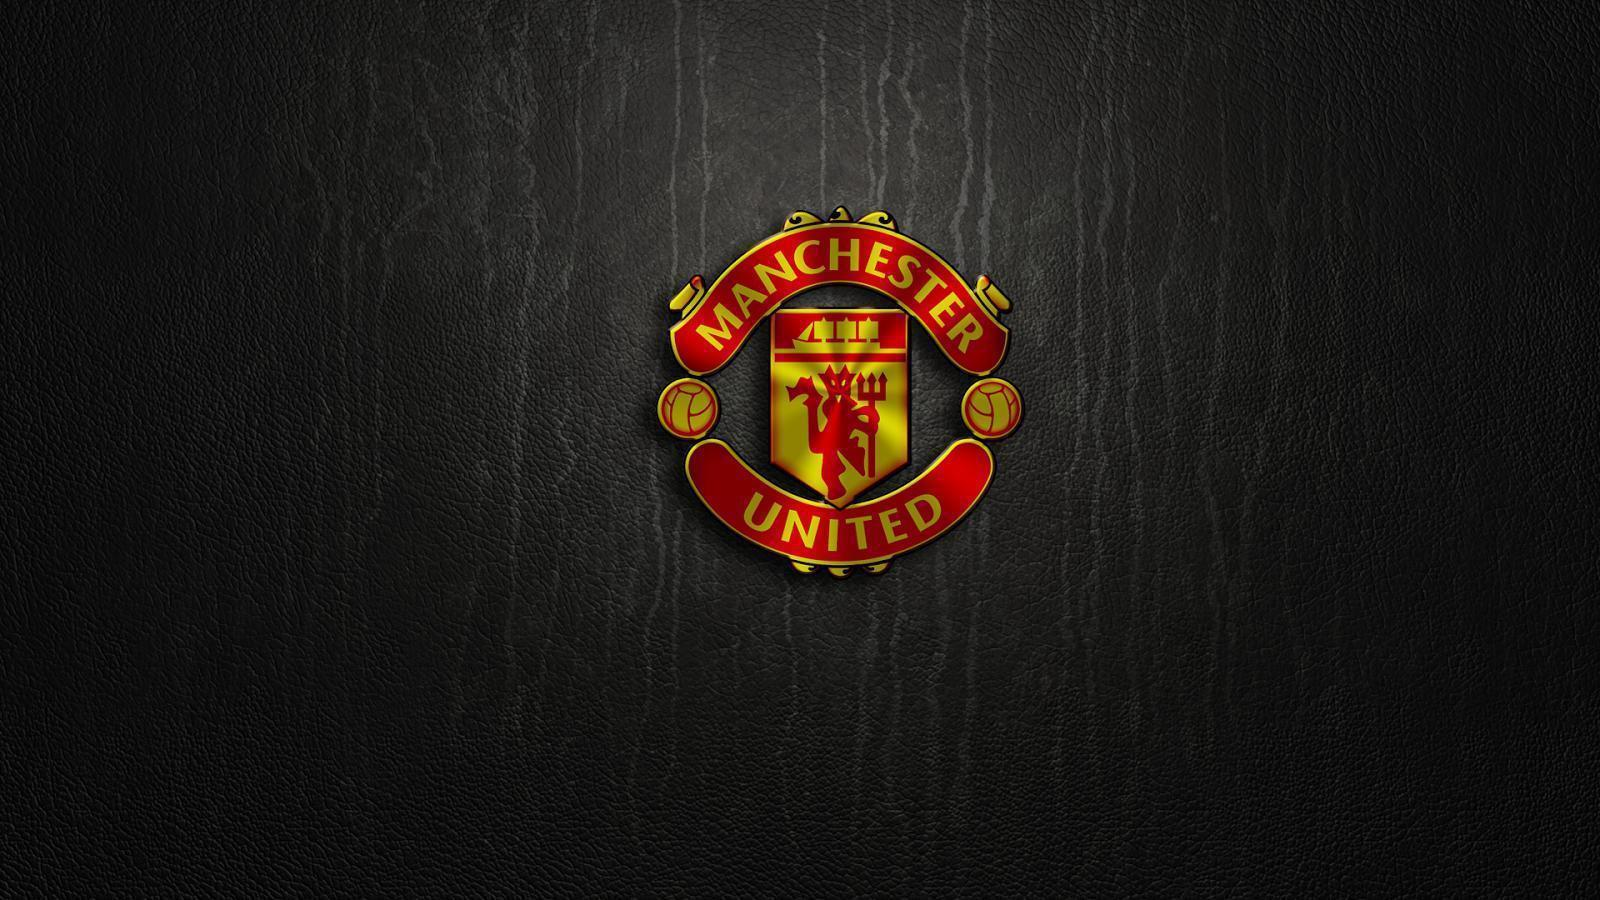 Manchester United Wallpapers HD (68) - Download Free Wallpapers HD